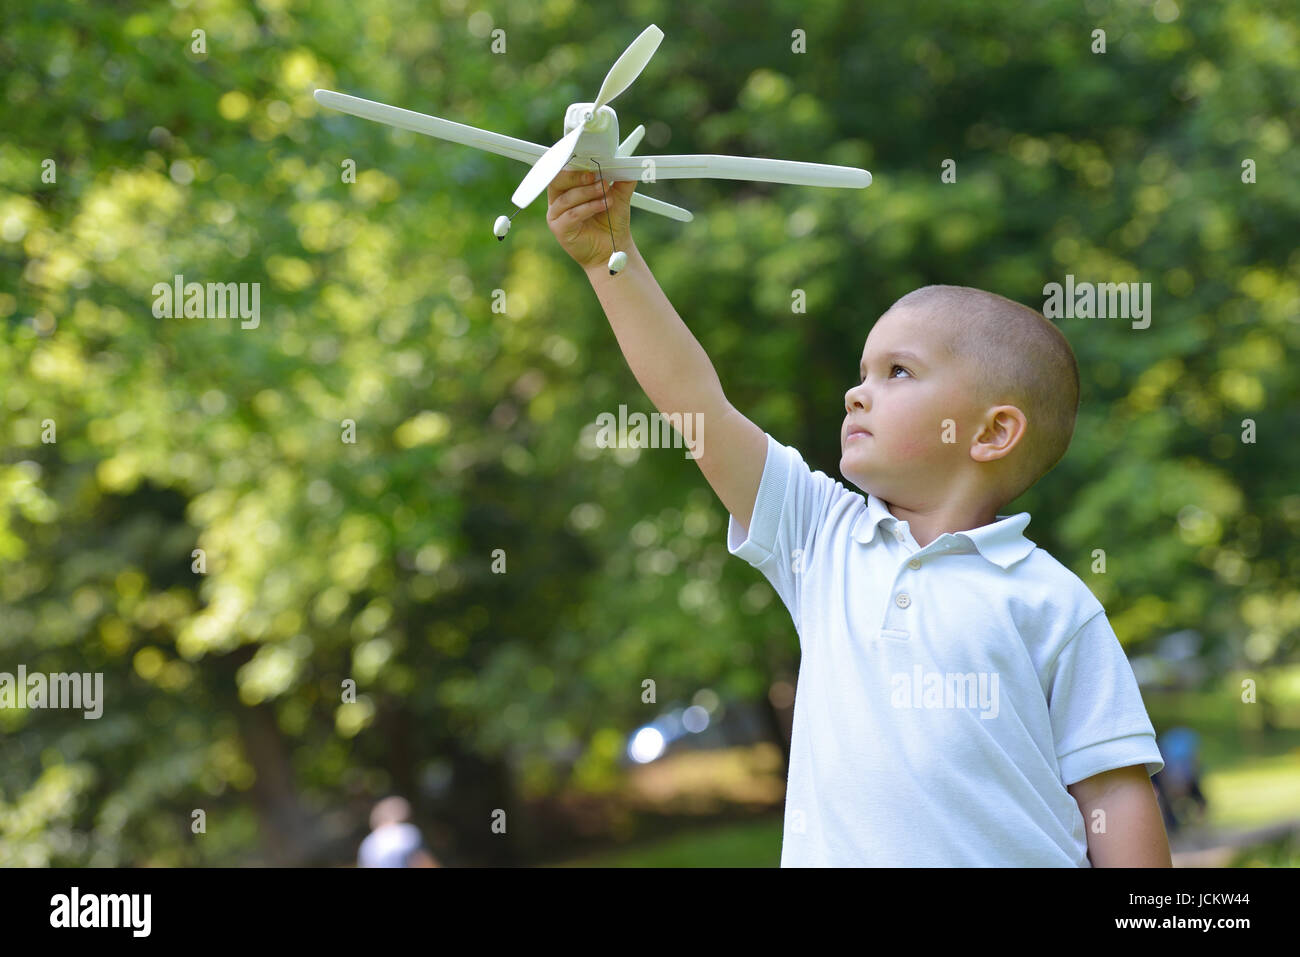 happy boy play and  throw airplane in park - Stock Image